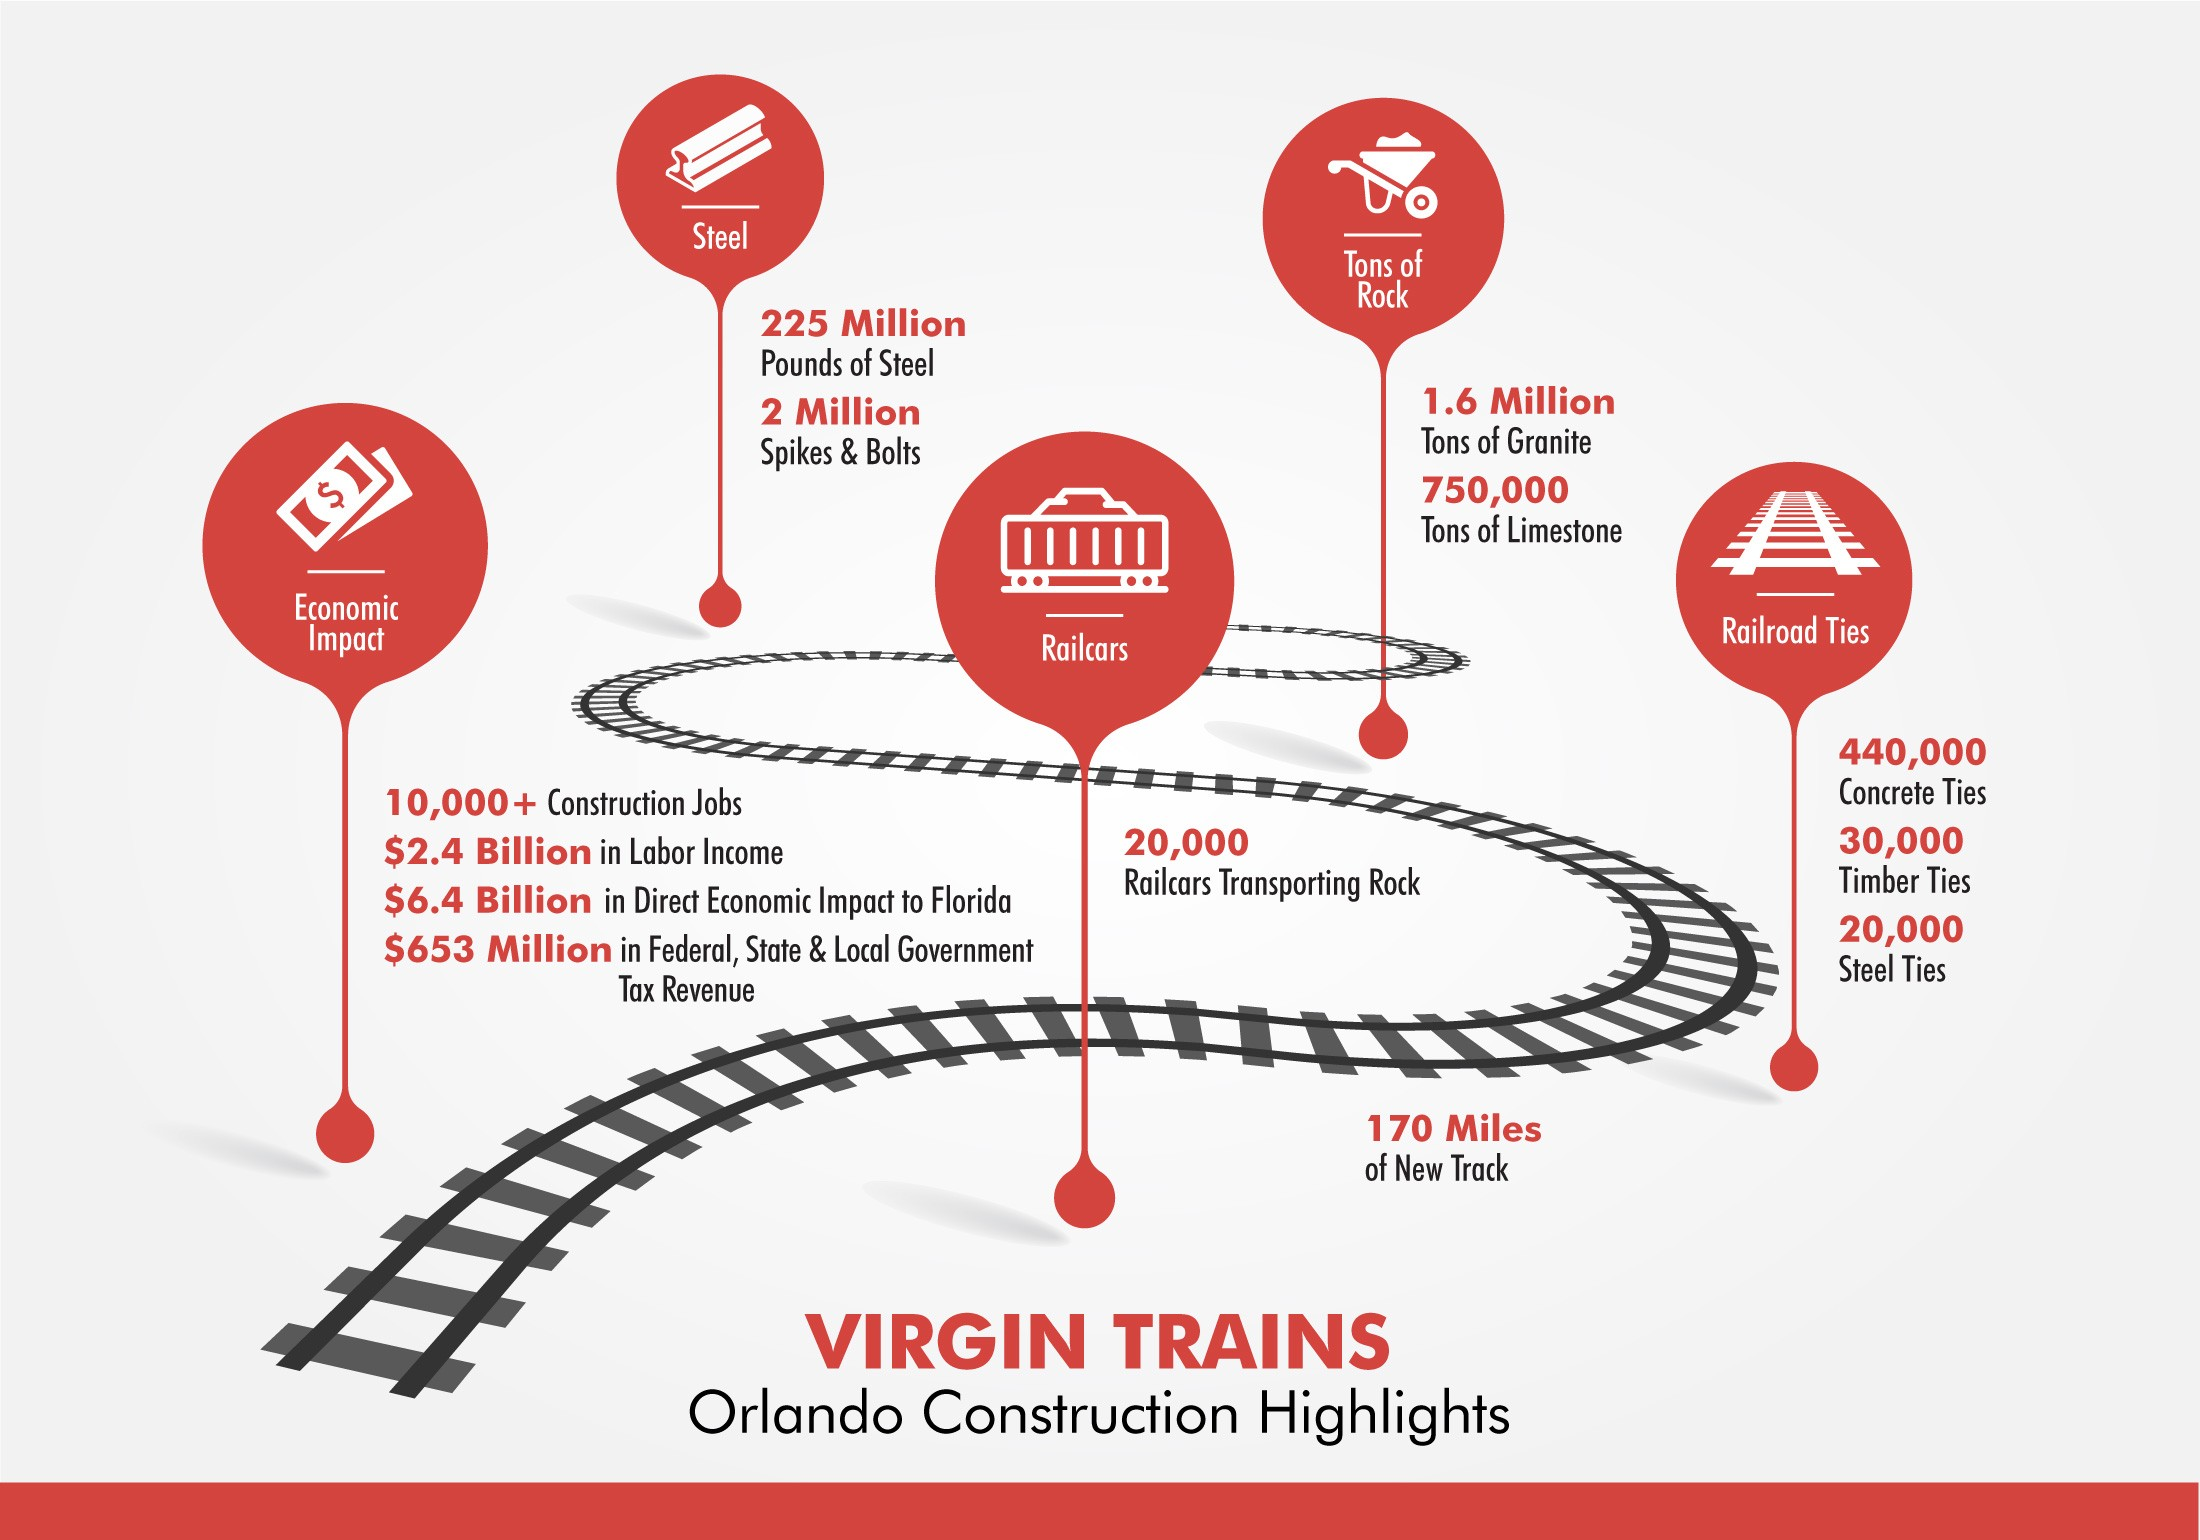 Construction begins today on Virgin Trains USA route between